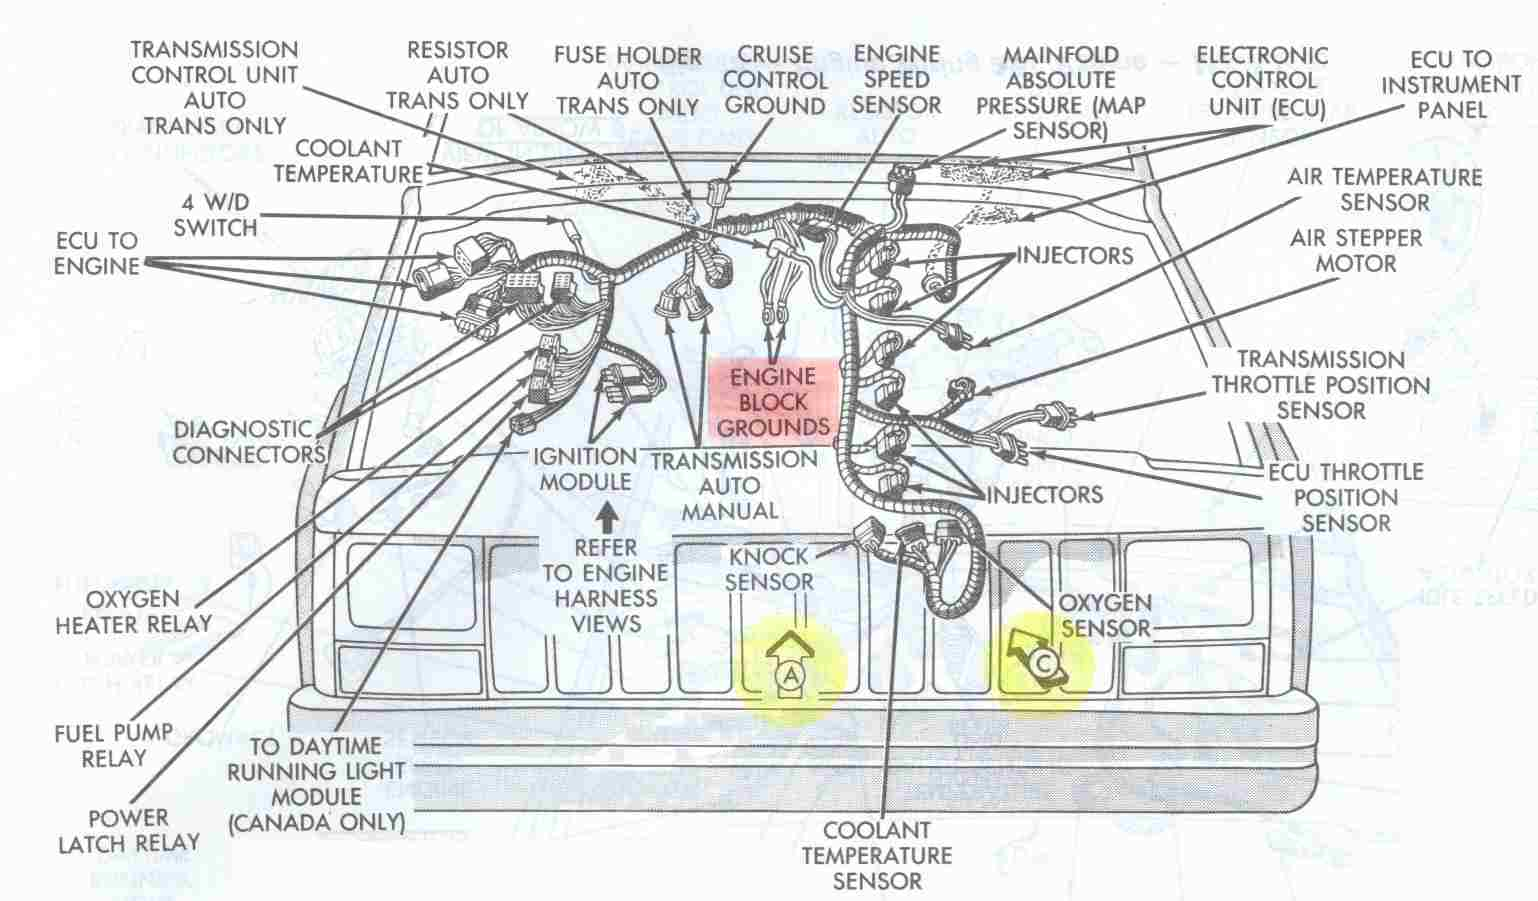 Electrical_Engine_Ground_Points_Overview jeep cherokee electrical diagnosing erratic behavior of engine jeep cherokee wiring harness replacement at crackthecode.co